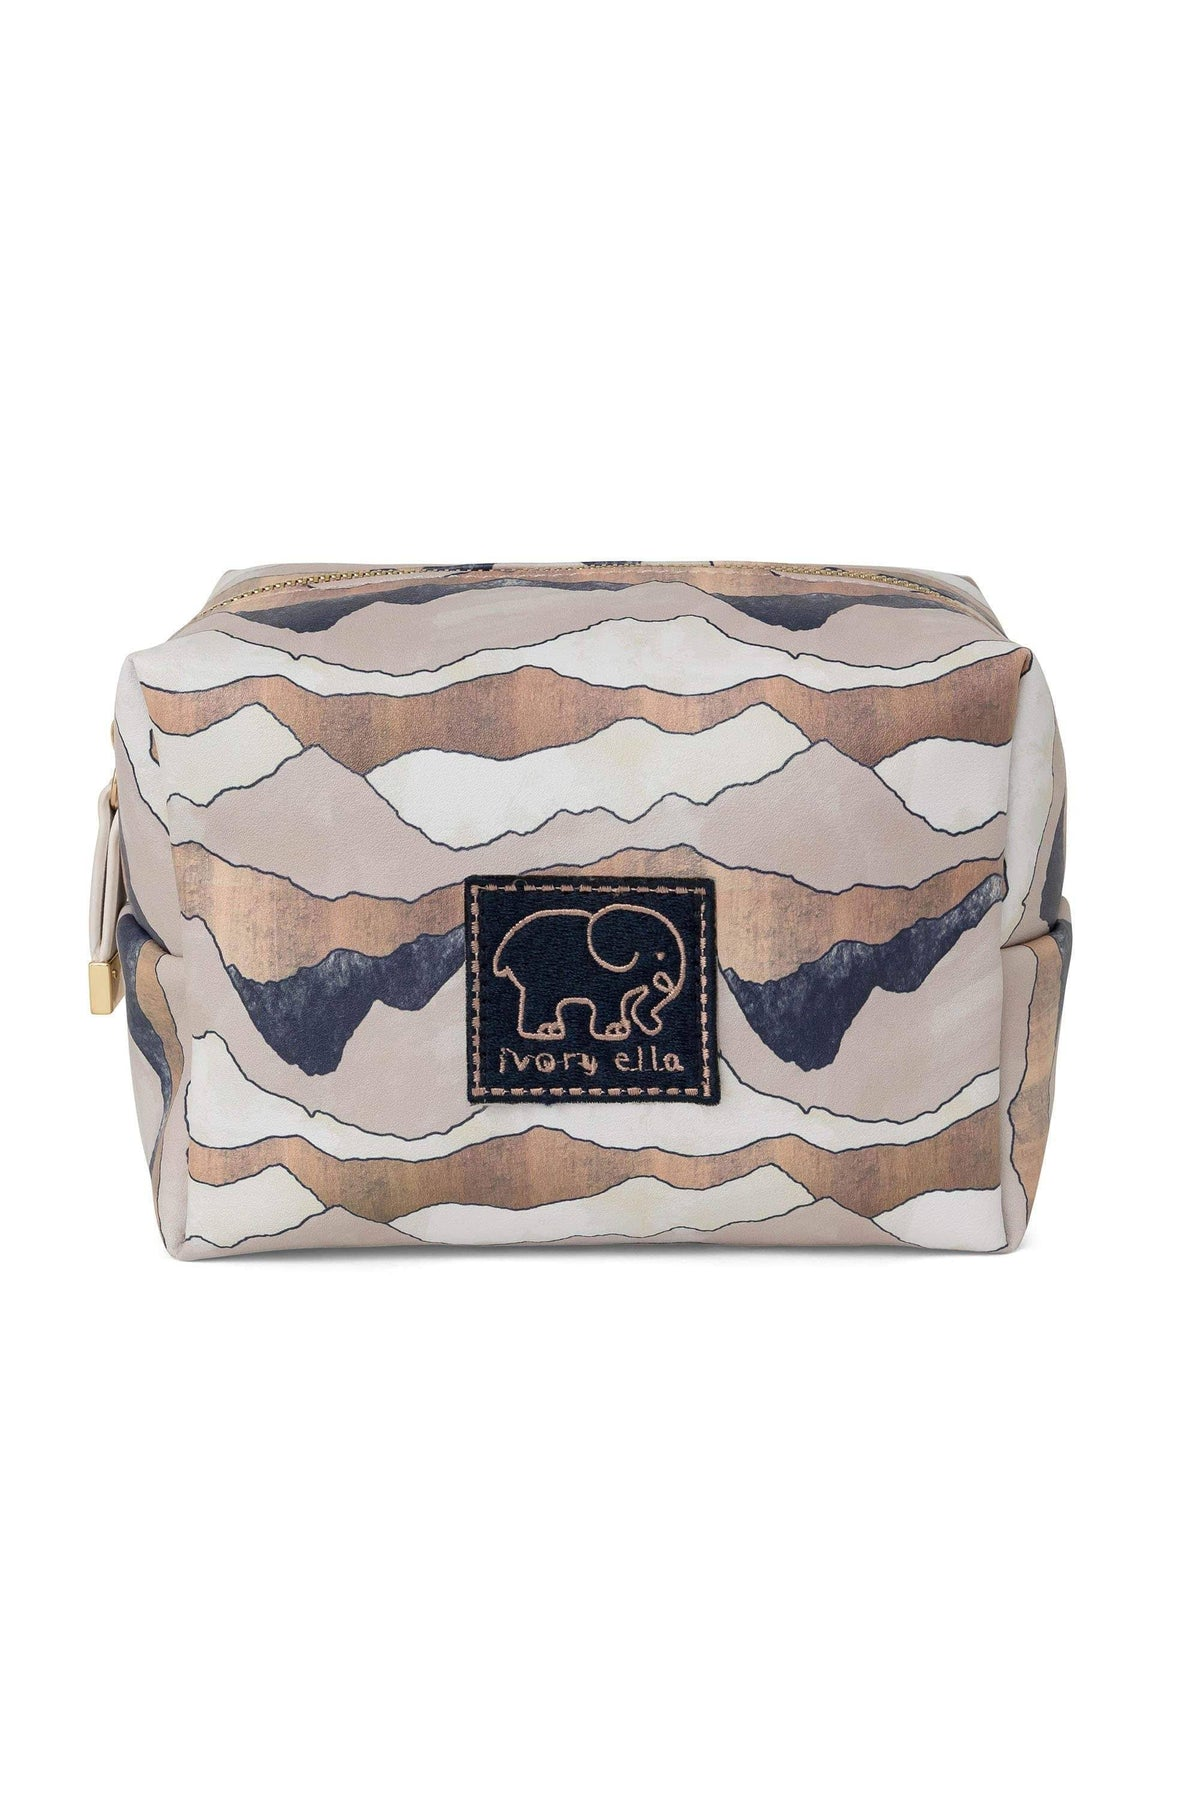 Ivory Ella Accessories OS Sepia Rose Cosmetic Bag